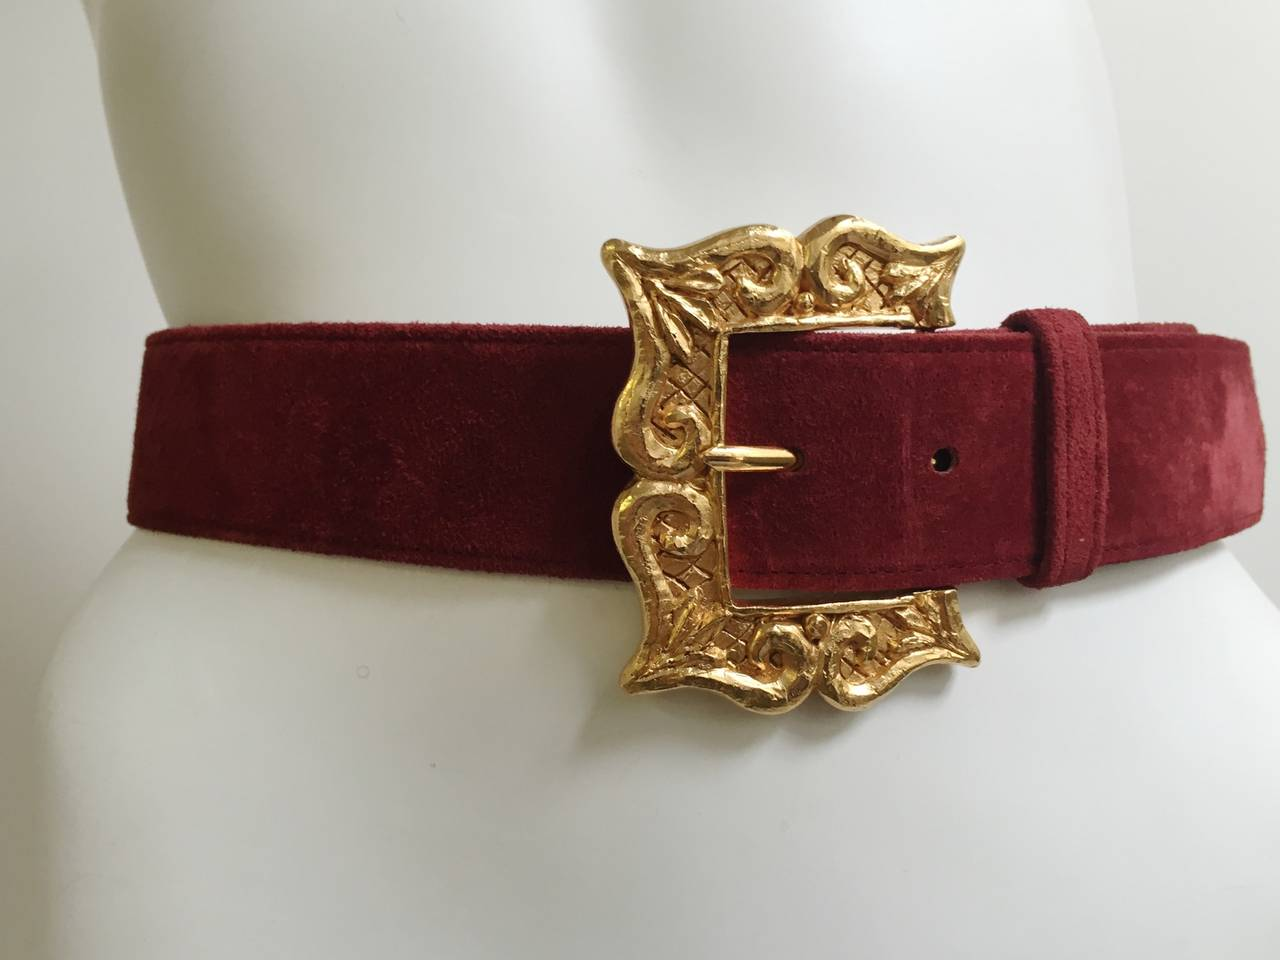 Christian Lacroix 1980s burgundy suede belt with classic Lacroix gold frame buckle size 38 fits like a size 4 ( Please see & use measurements to measure your waist to see if this belt works for you). 